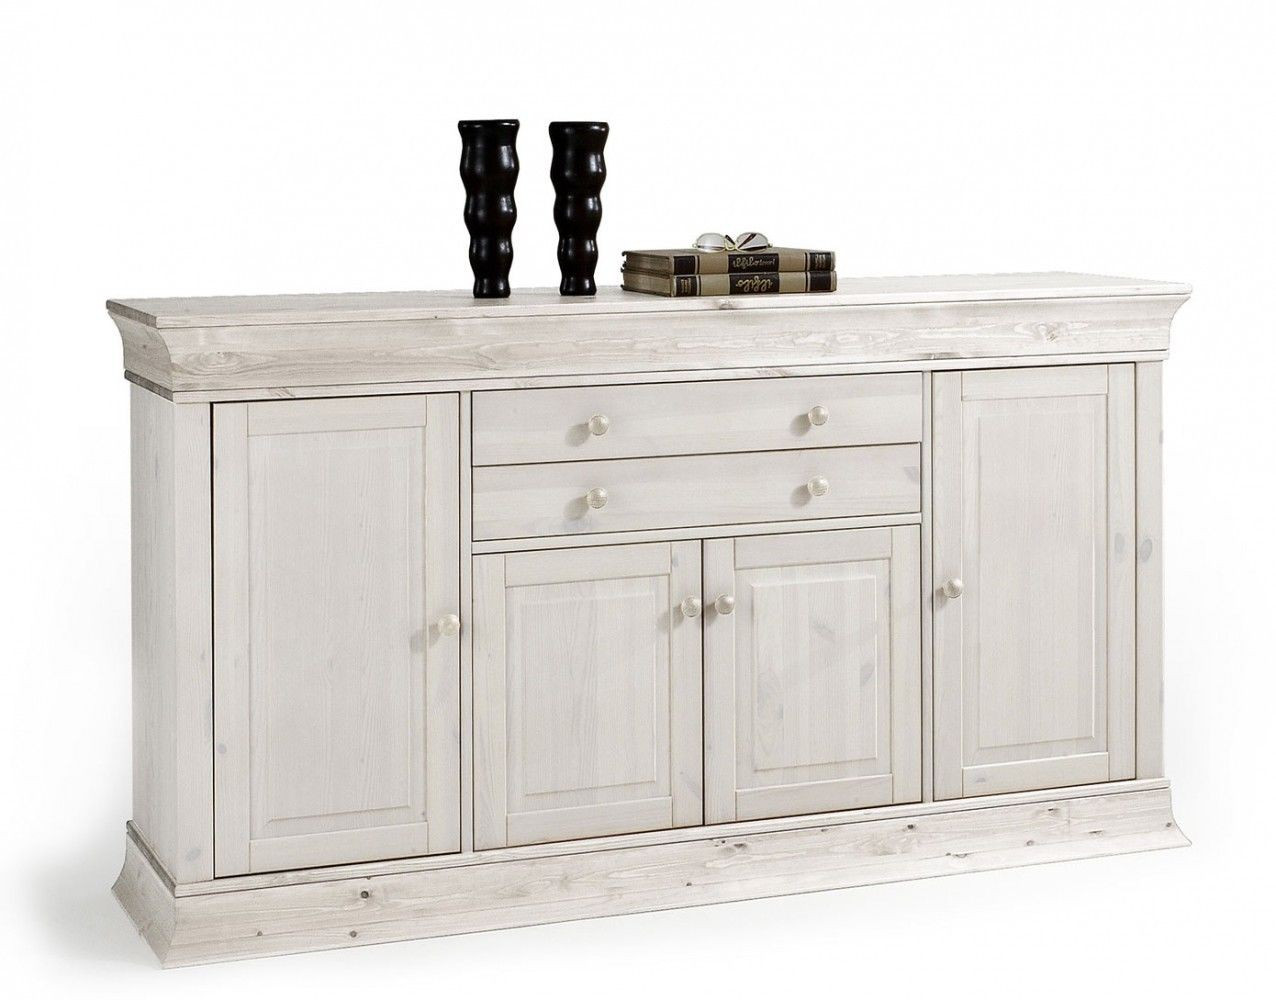 sideboard-boston-kiefer-massiv-landhausstil.jpg